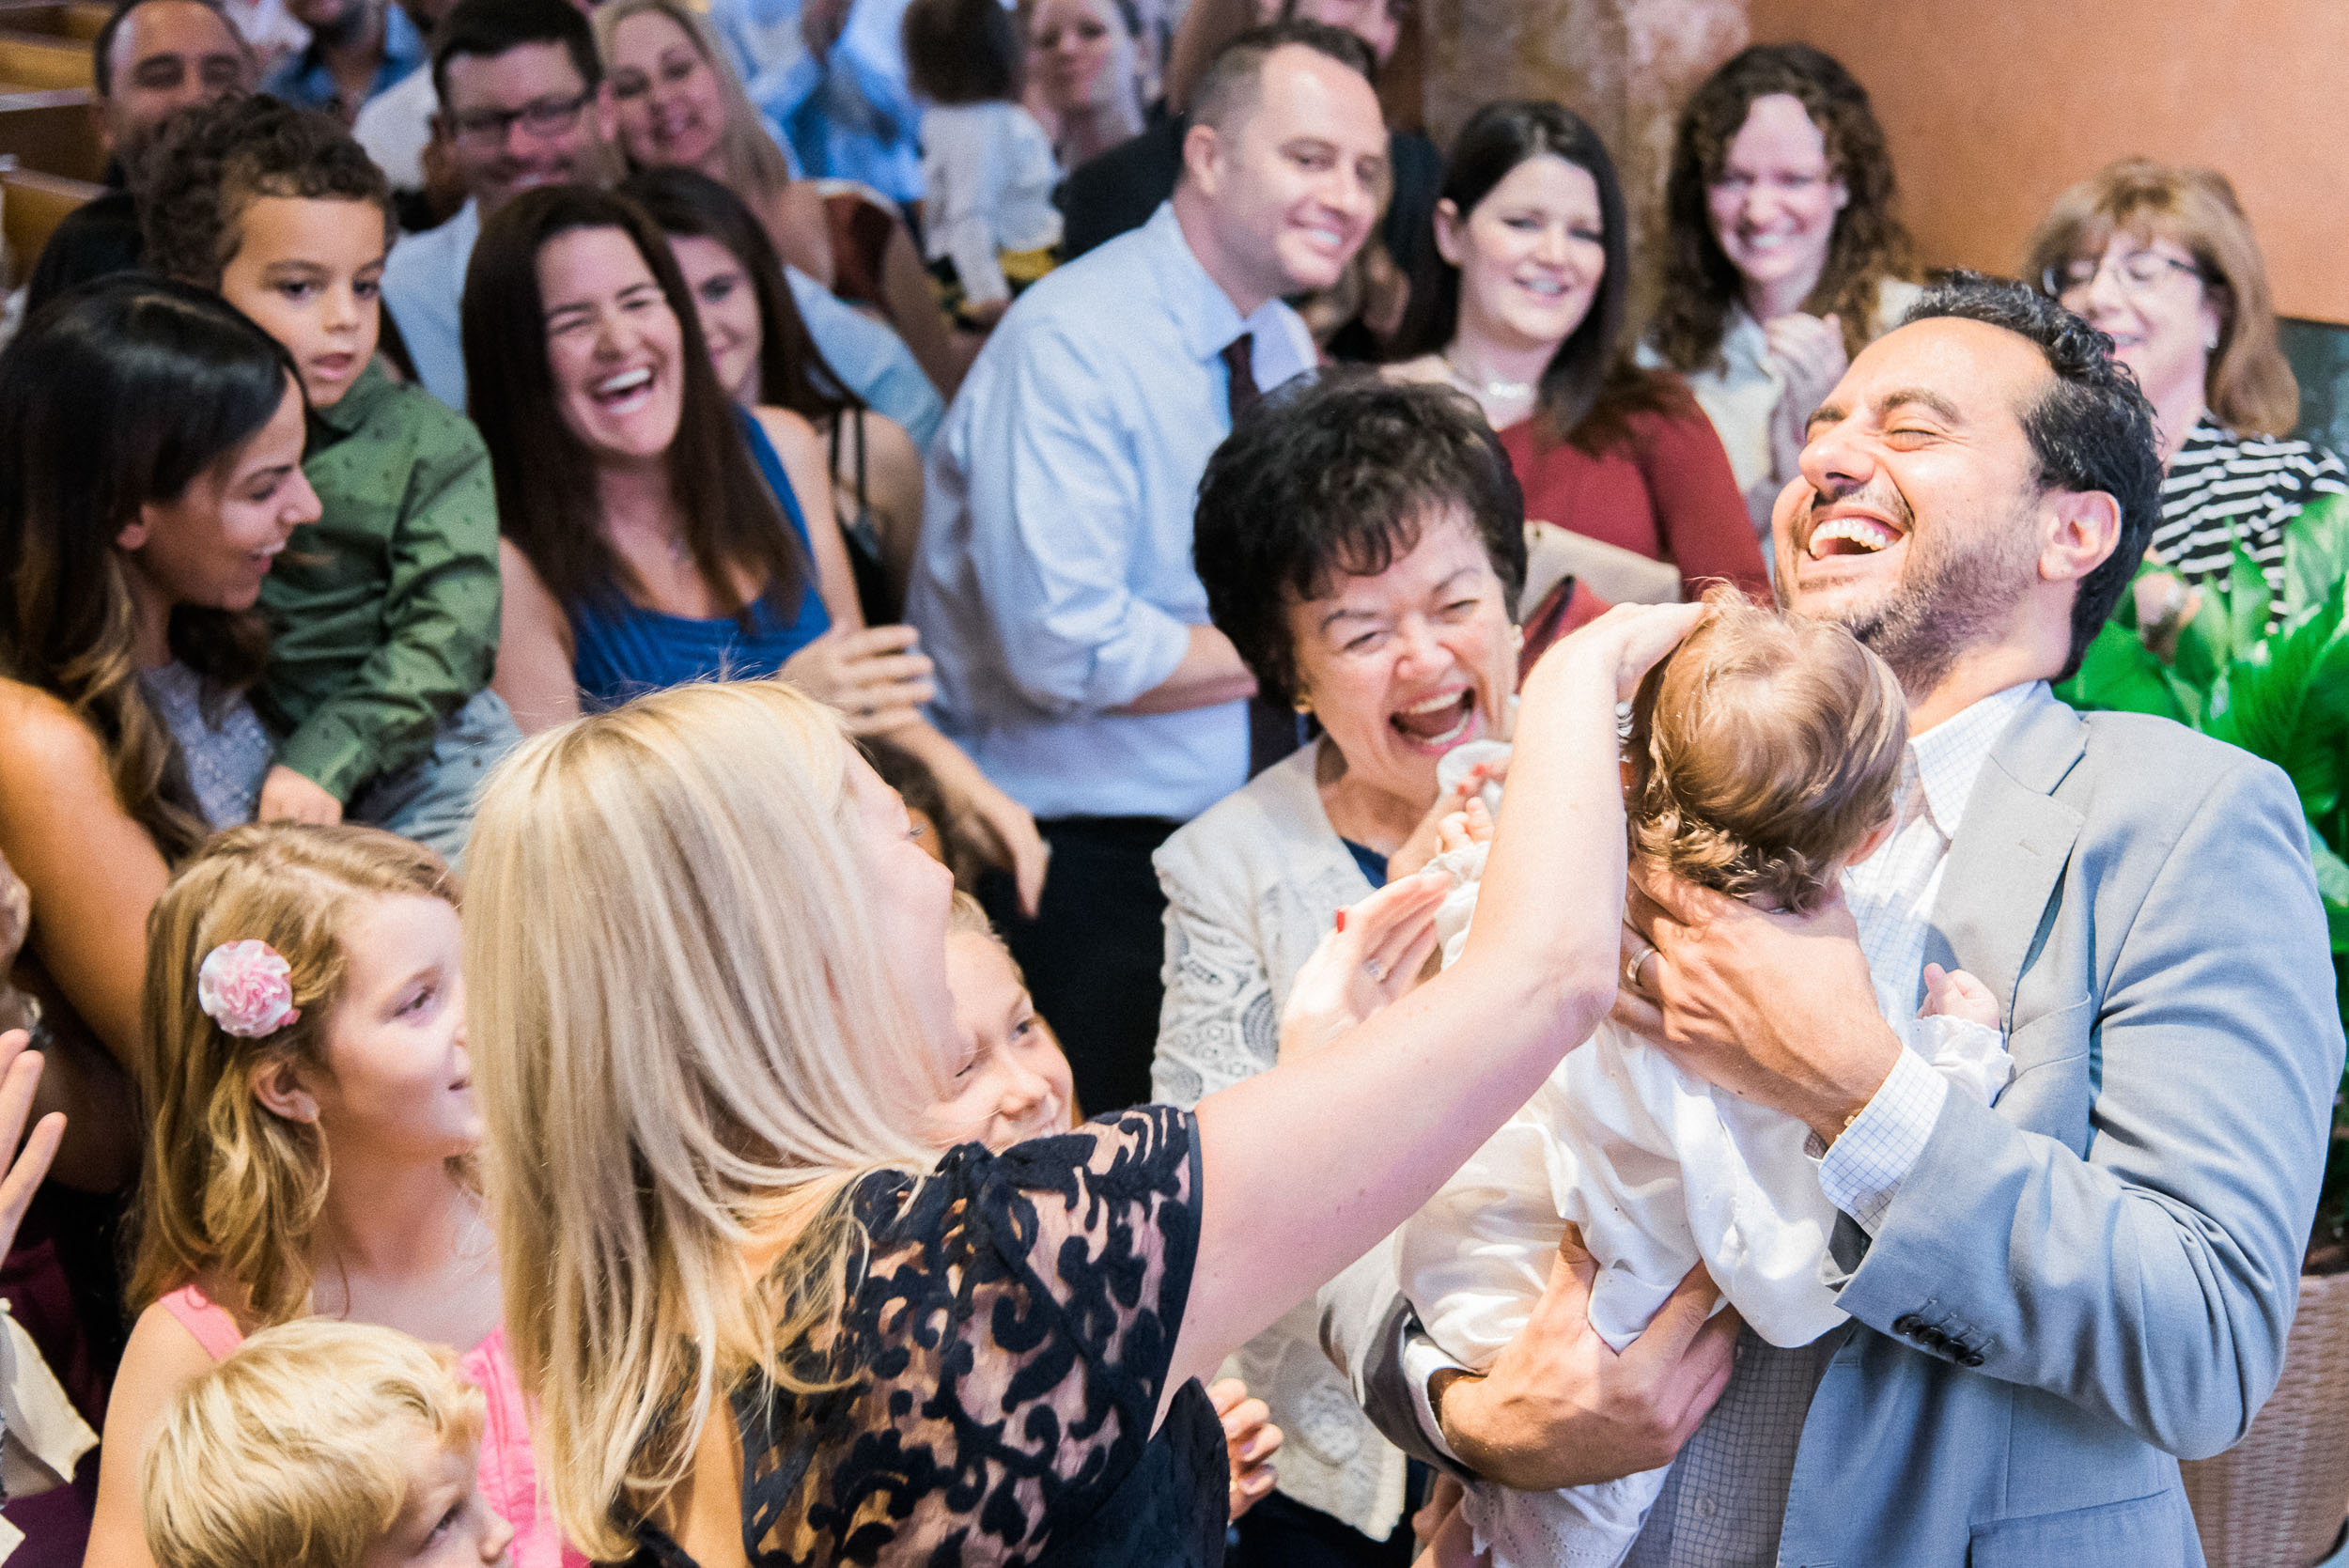 Bryan-Miraflor-Photography-Our-Lady-of-Grace-Neave-Baptism-20161009-0113.jpg